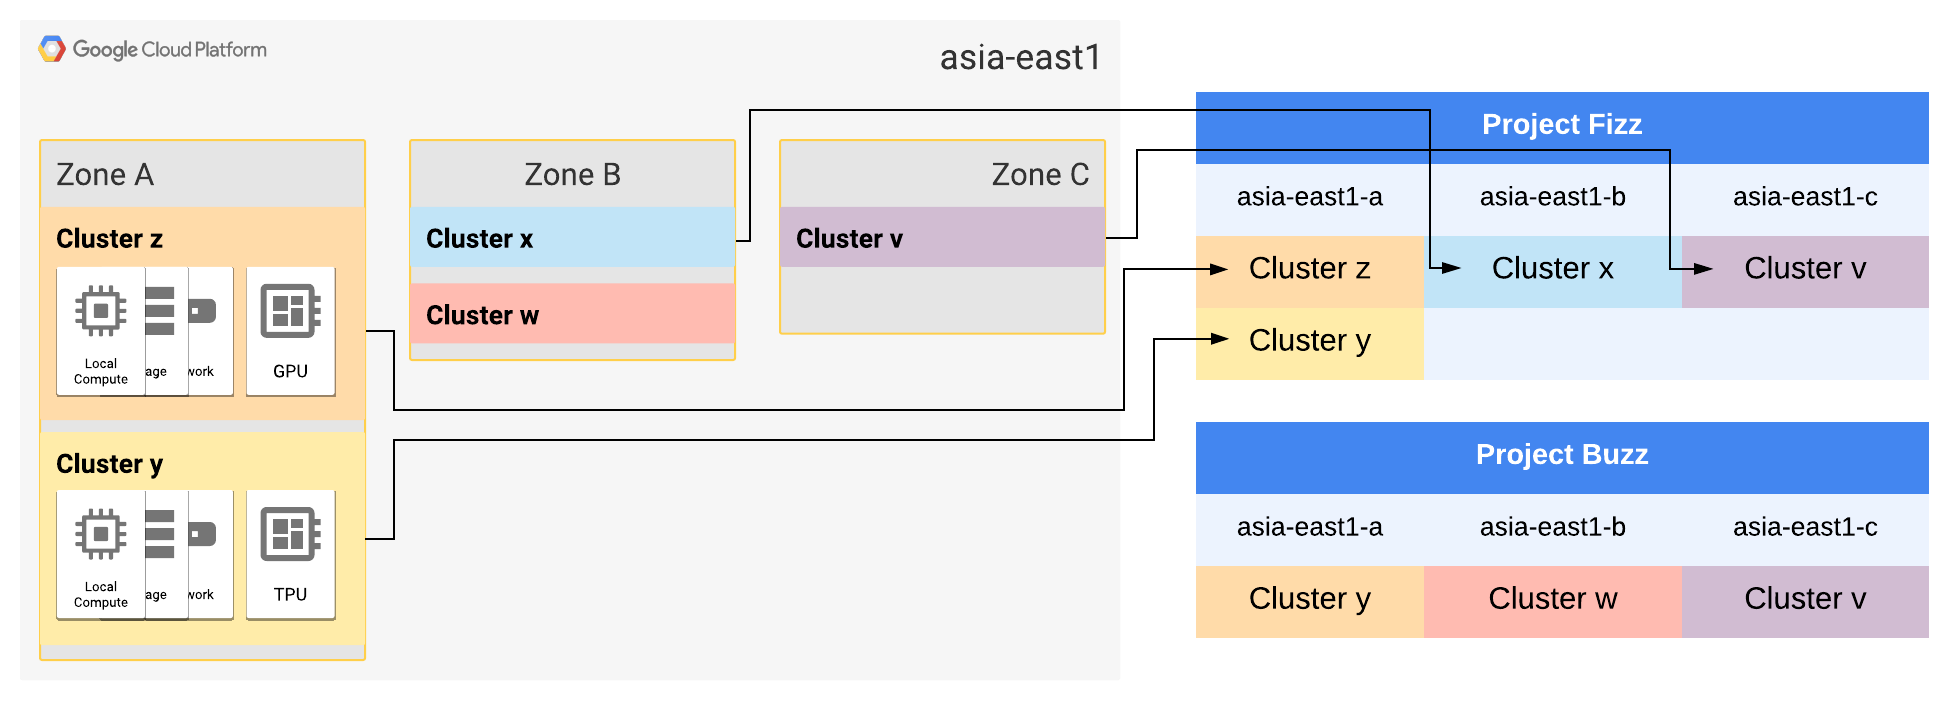 asia-east1 zones A and B have each expanded to two clusters.